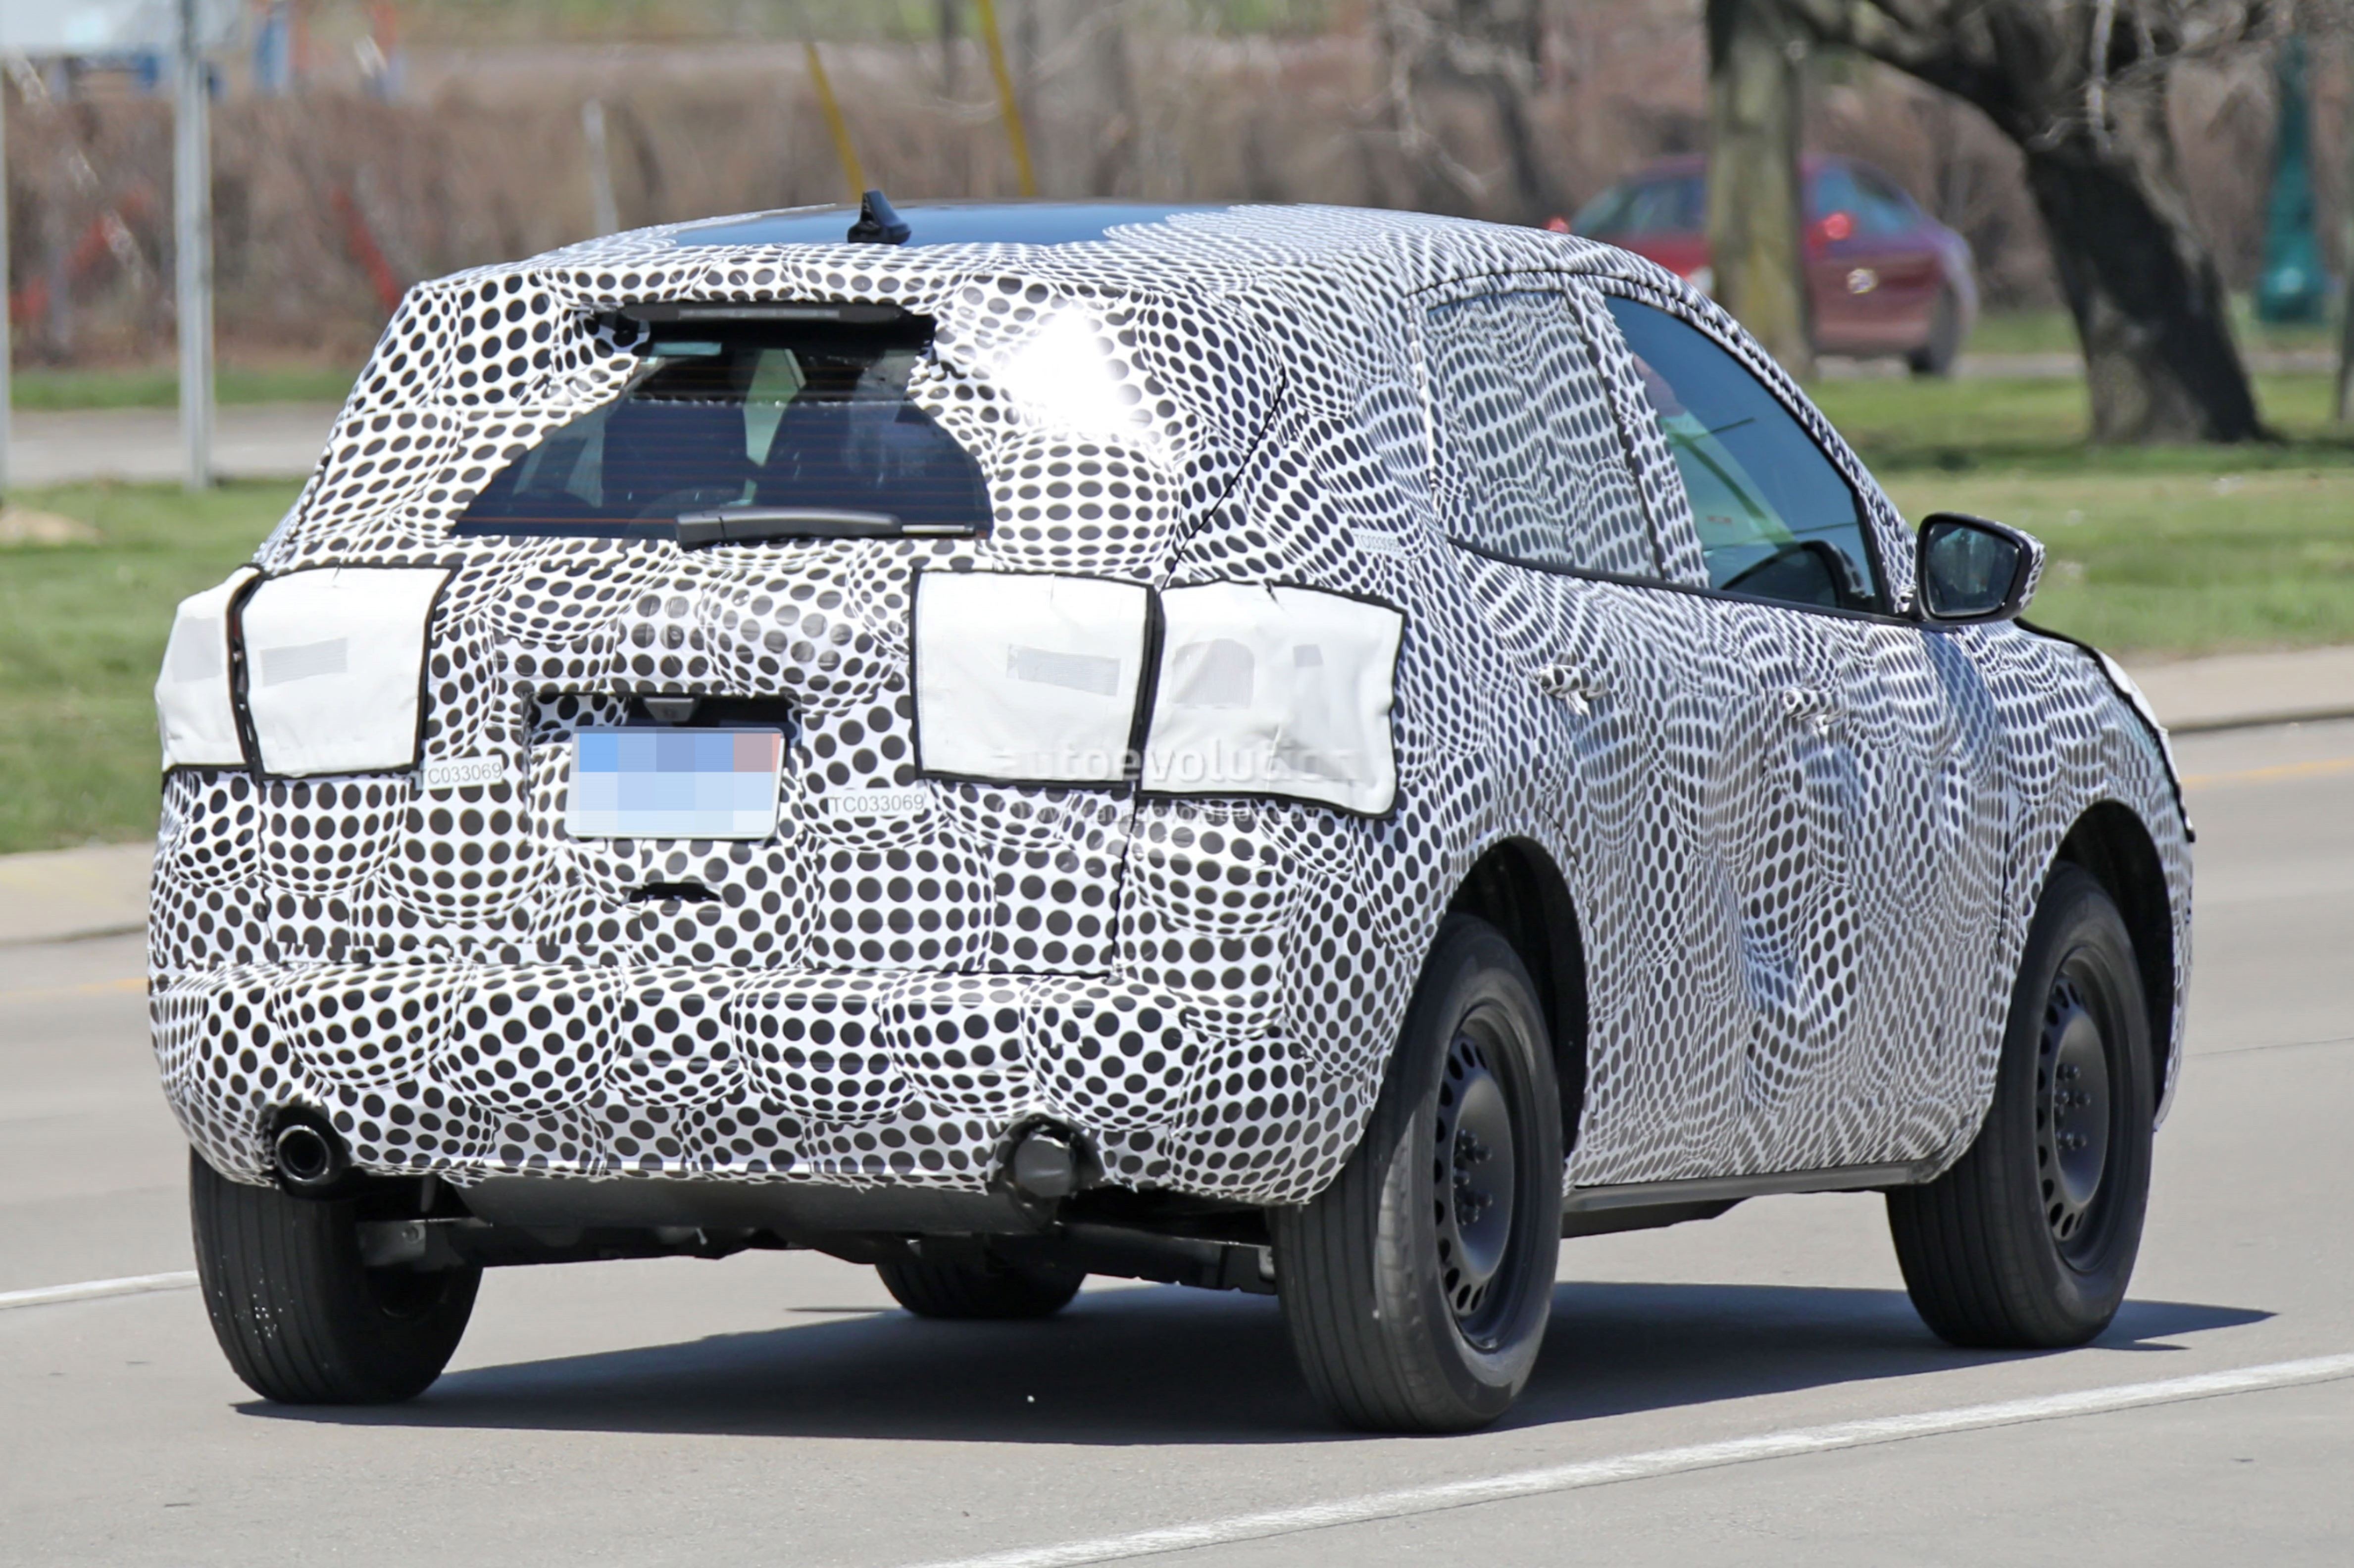 2020 Ford Escape (Kuga) Spied Inside And Out, Focus IV Design Influences Abound - autoevolution